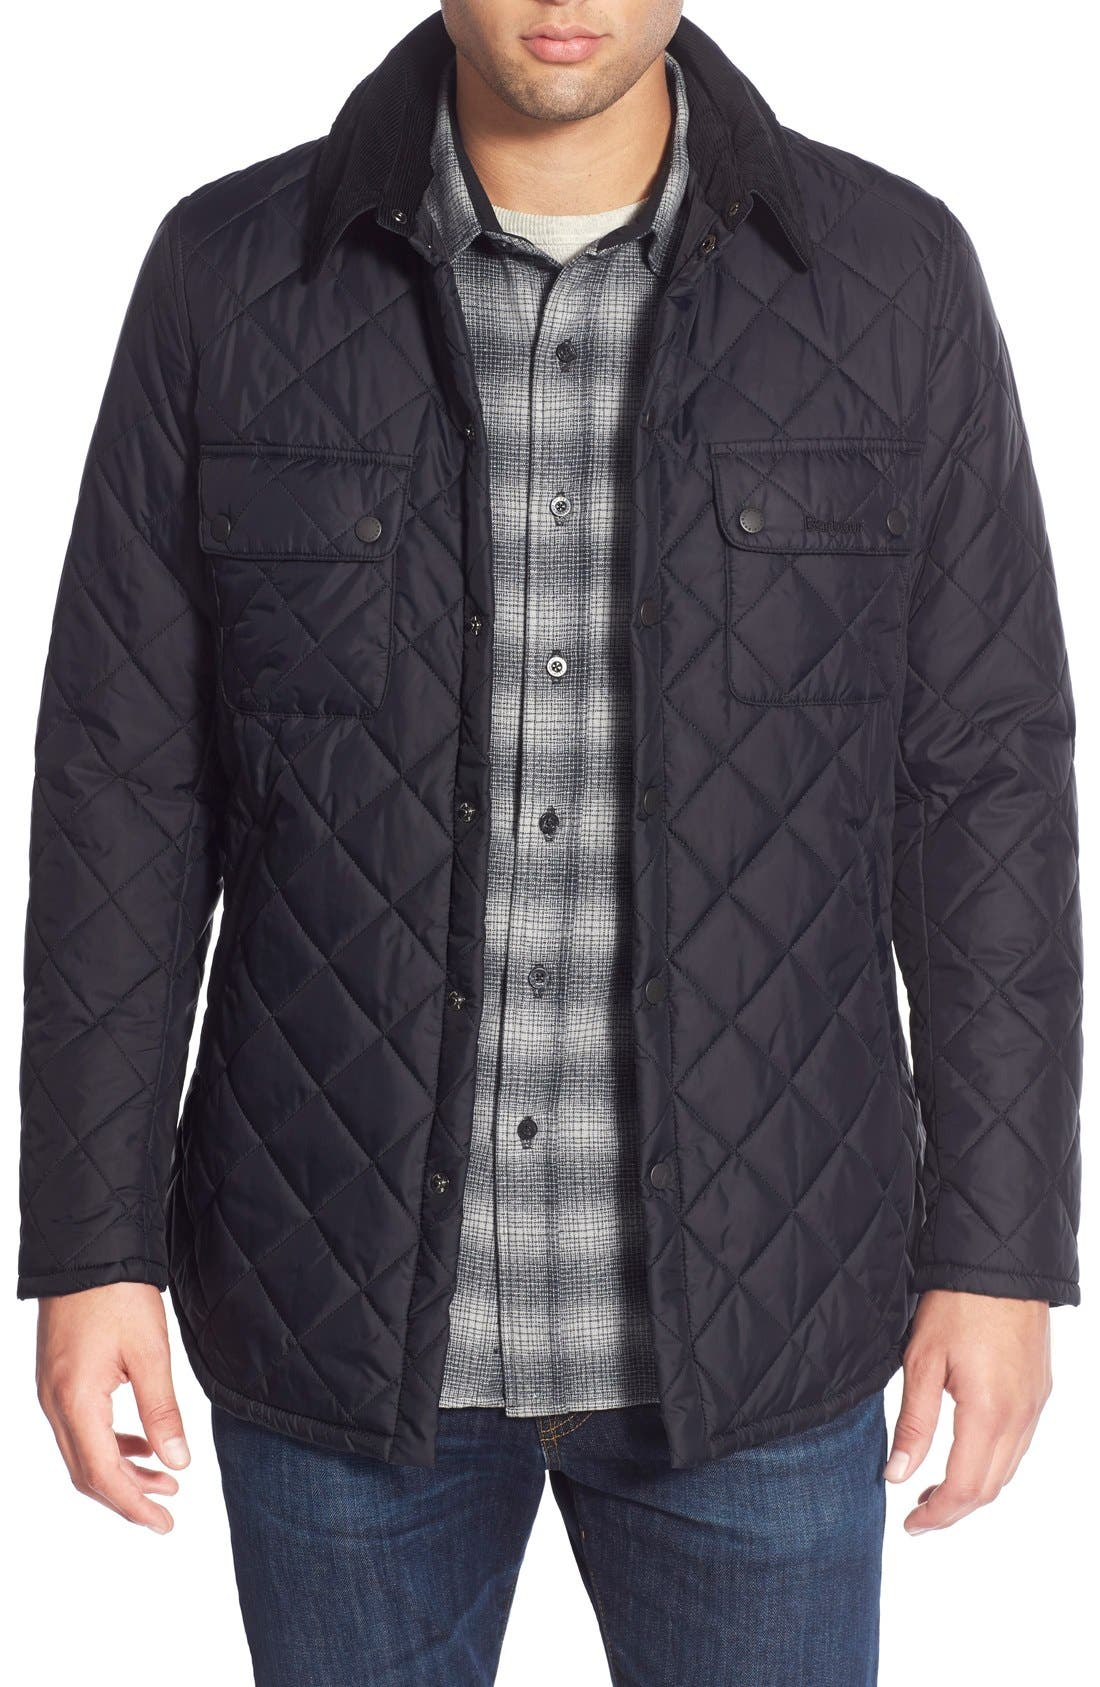 Main Image - Barbour 'Akenside' Regular Fit Quilted Jacket